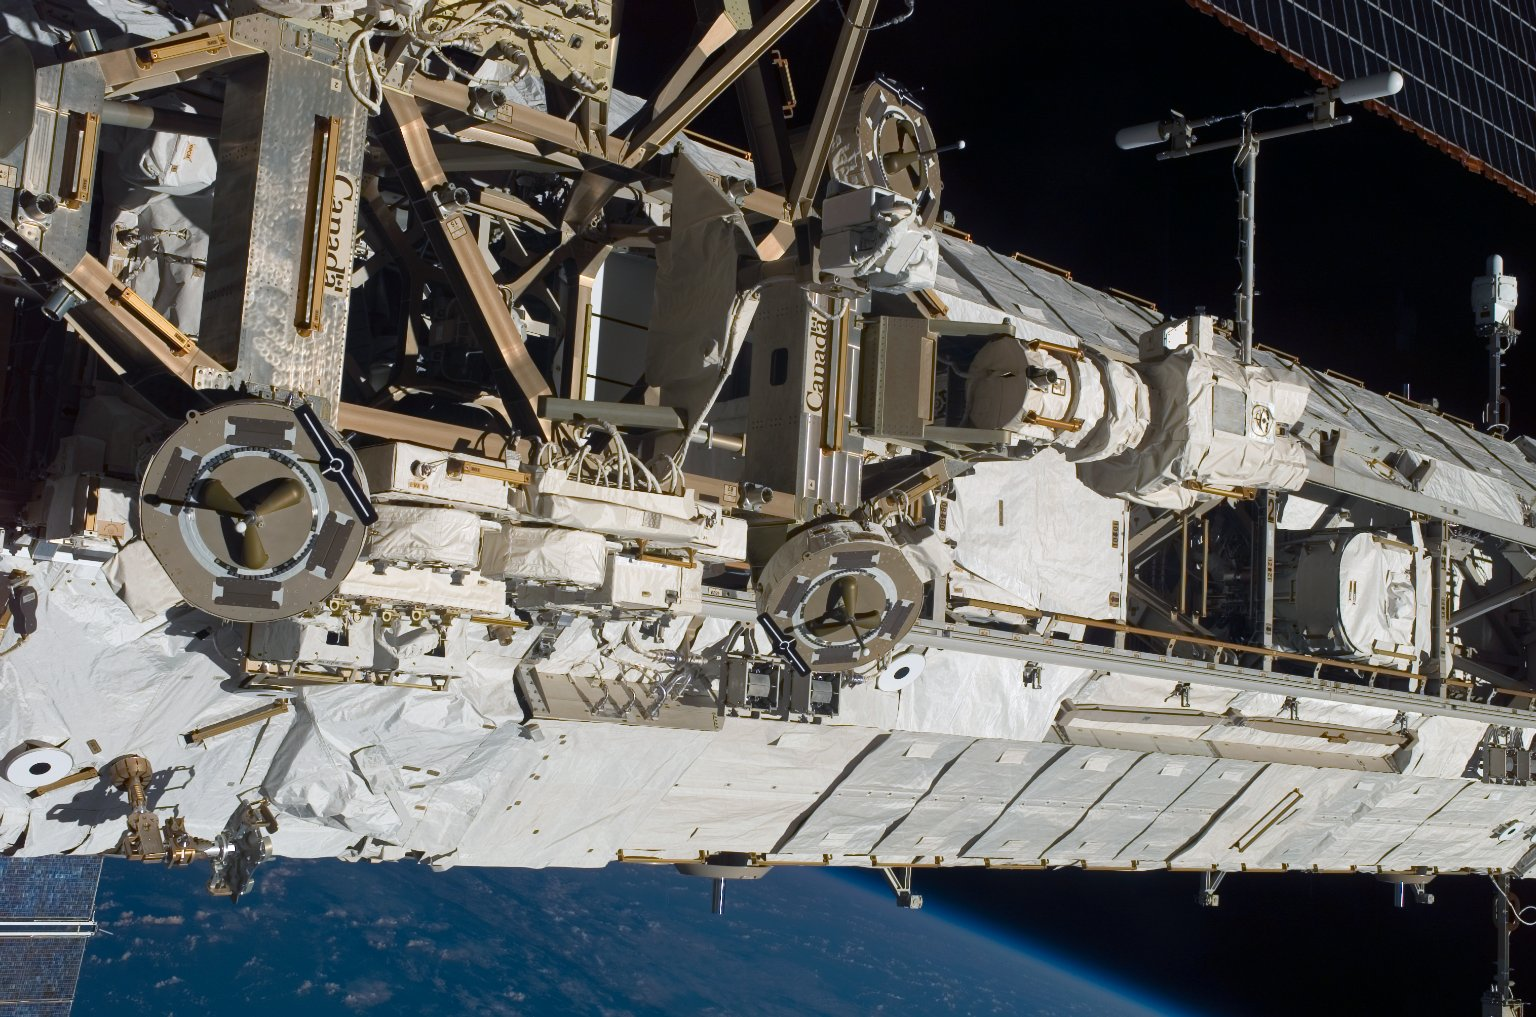 View of the MBS and P1 Truss taken during STS-121 / Expedition 13 joint operations